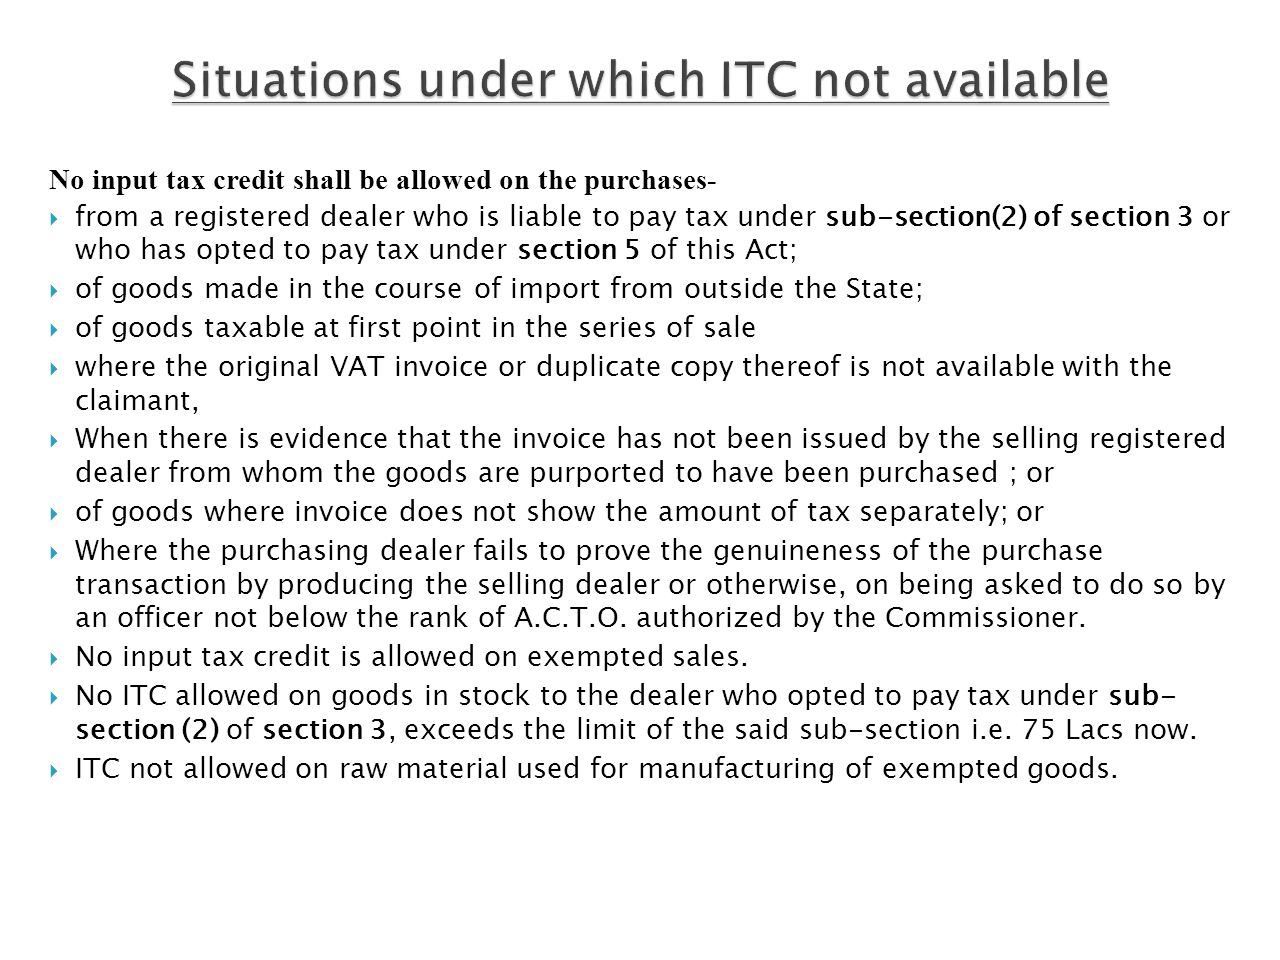 No input tax credit shall be allowed on the purchases- from a registered dealer who is liable to pay tax under sub-section(2) of section 3 or who has